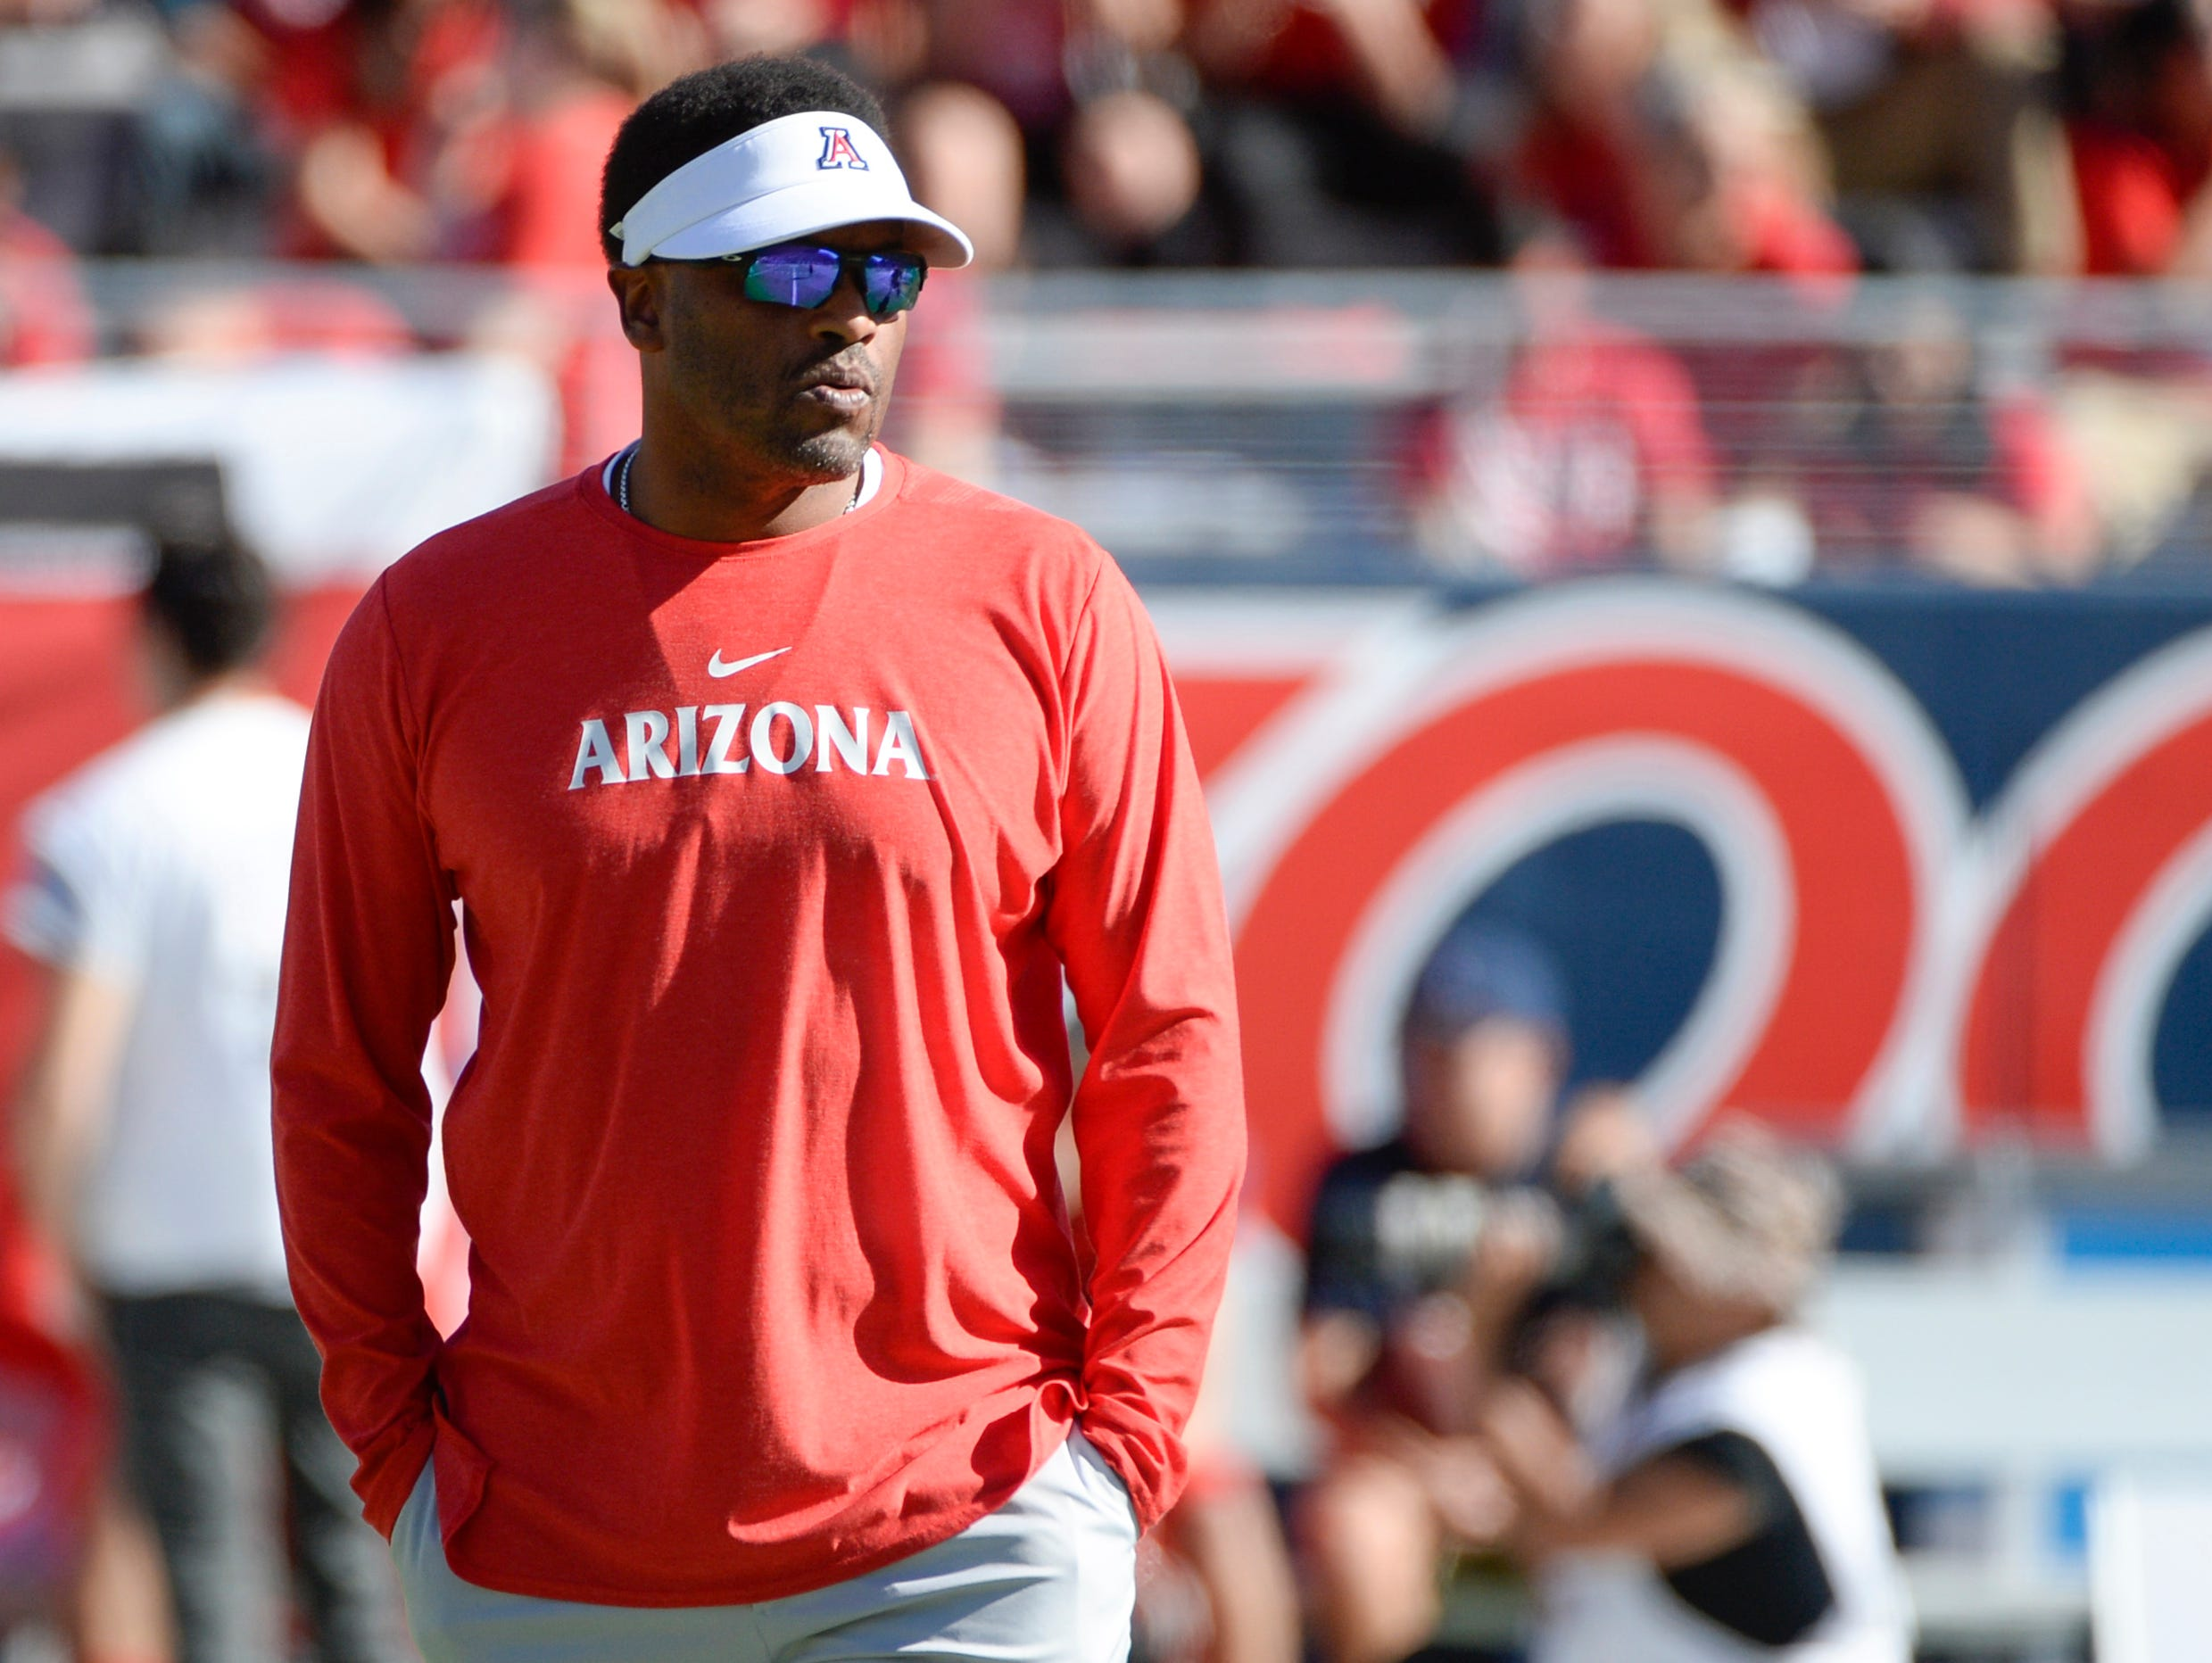 Nov 24, 2018; Tucson, AZ, USA; Arizona Wildcats head coach Kevin Sumlin watches as his team warms up before playing the Arizona State Sun Devils at Arizona Stadium. Mandatory Credit: Casey Sapio-USA TODAY Sports